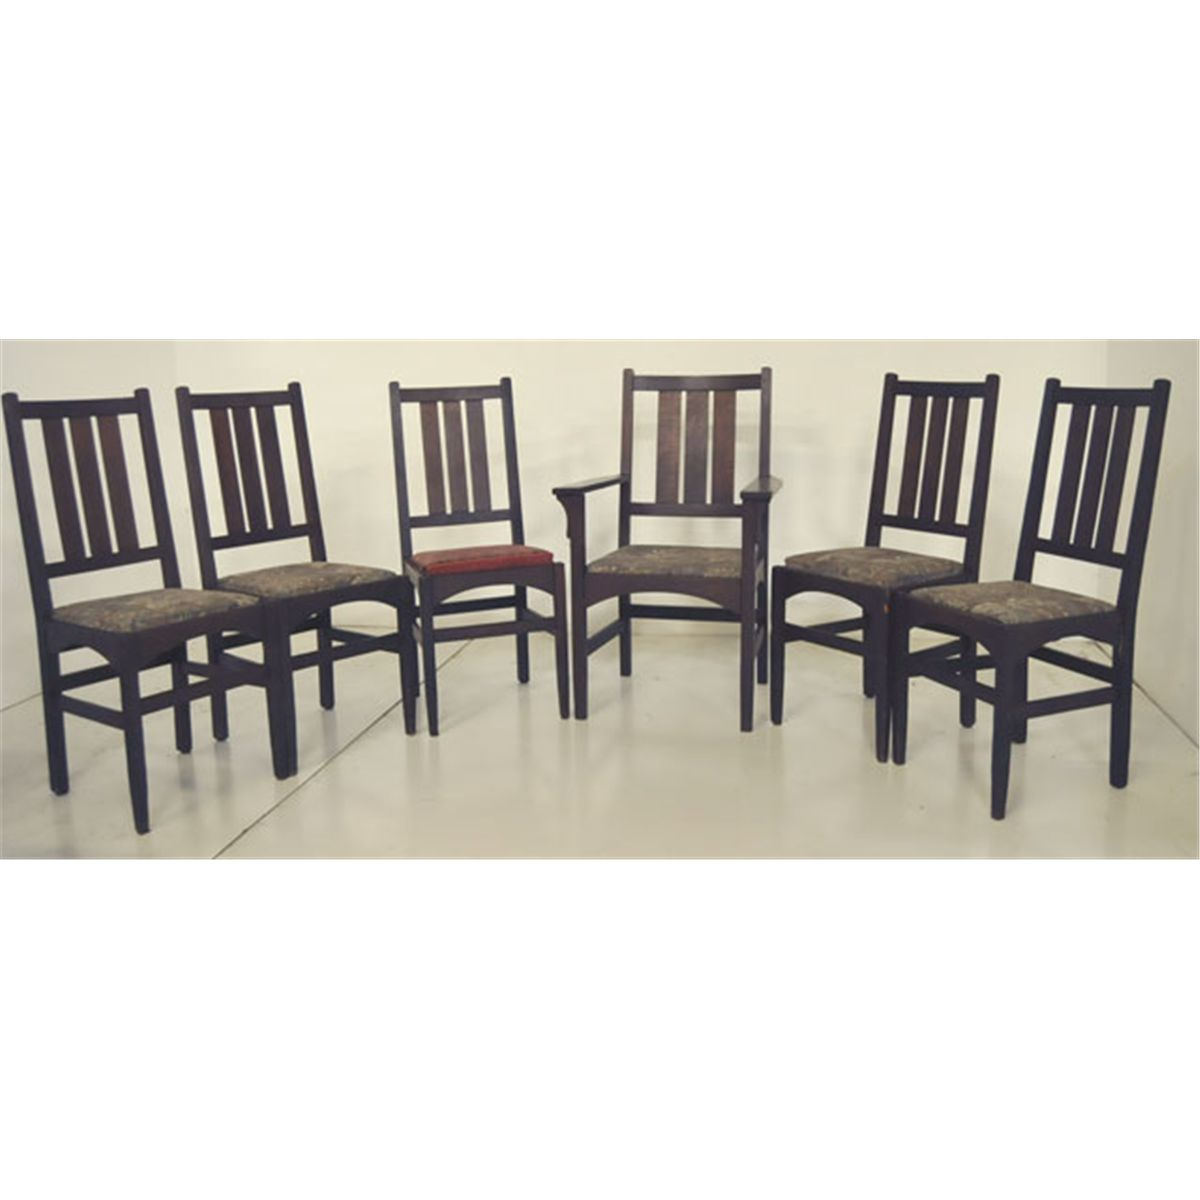 Stickley Dining Room Furniture For Sale -